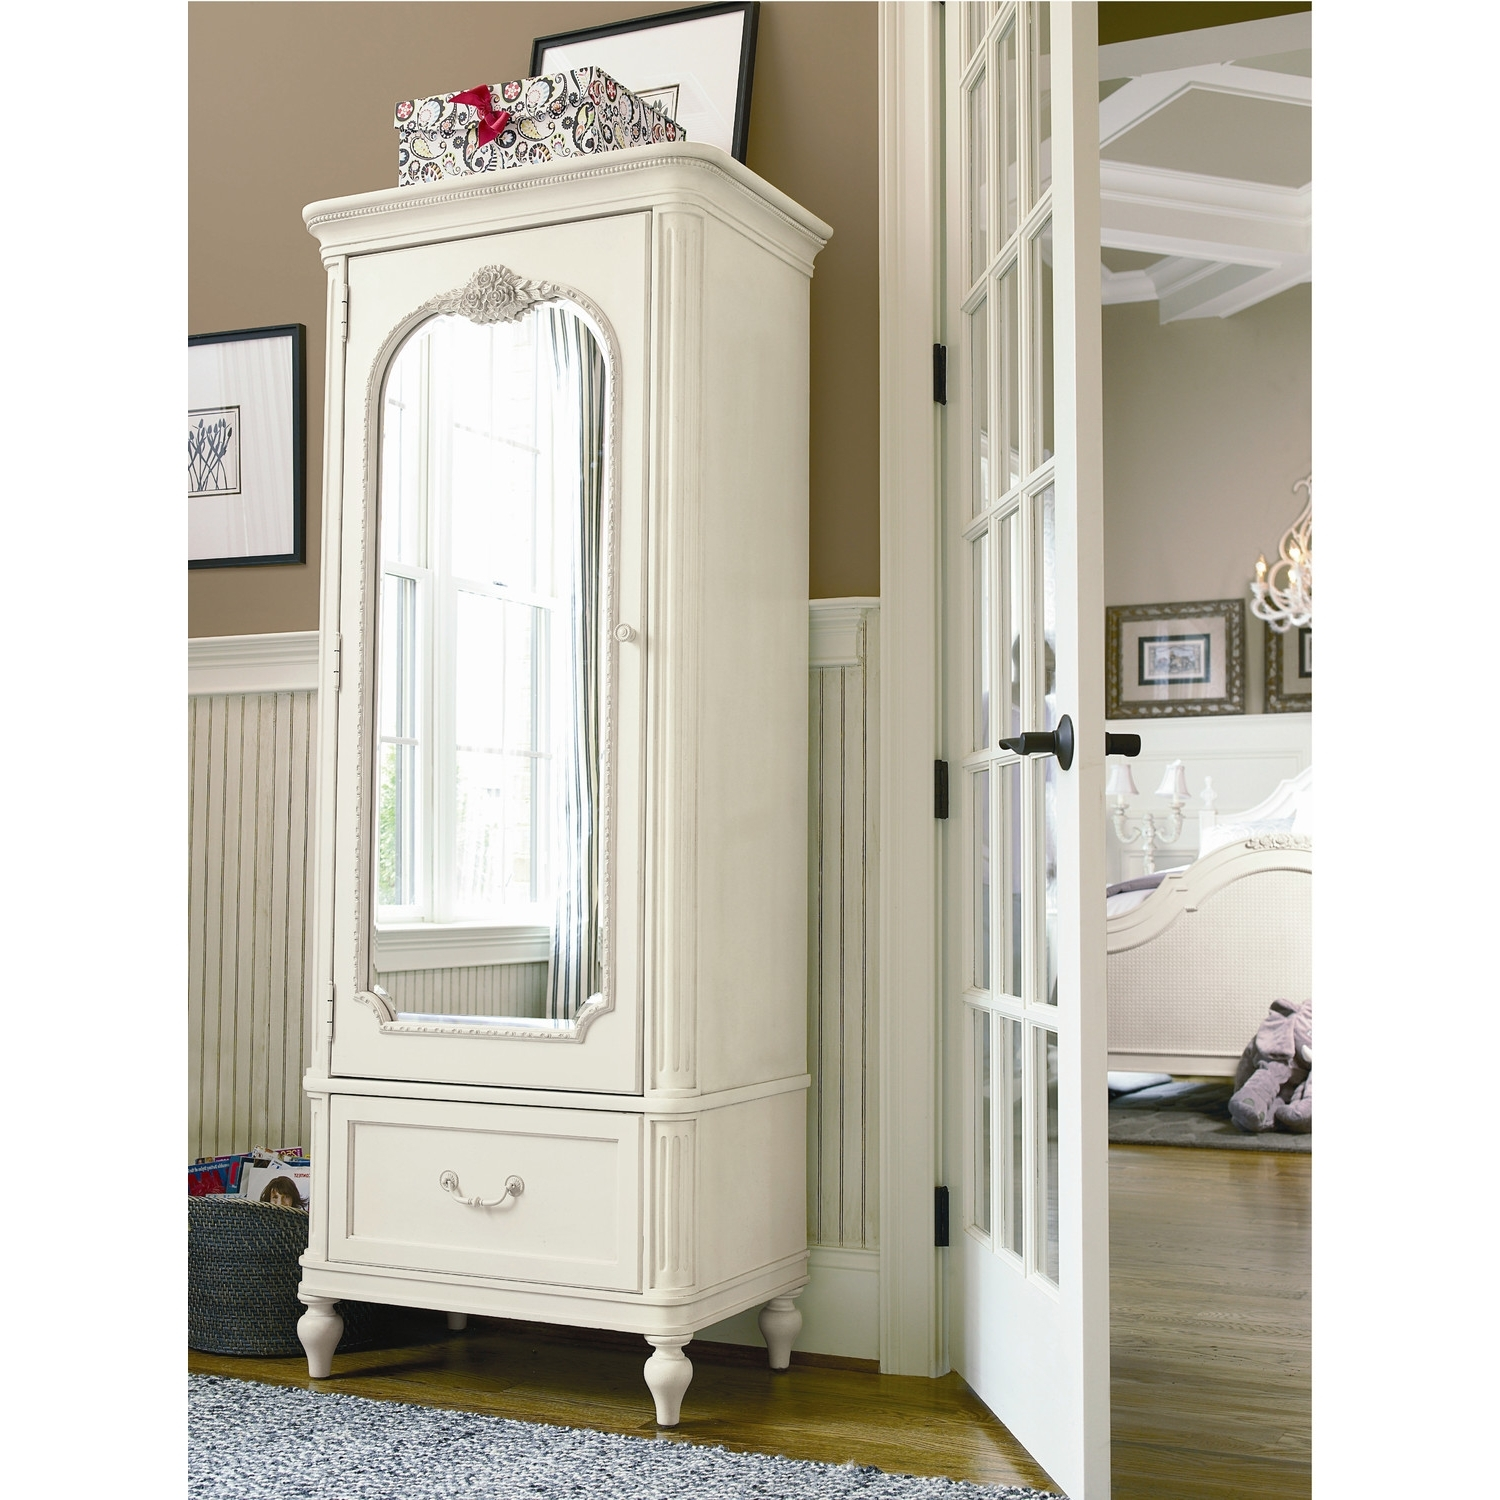 Fashionable Bedroom: Antique Interior Storage Design With Wardrobe Armoire Intended For White Wicker Wardrobes (View 2 of 15)